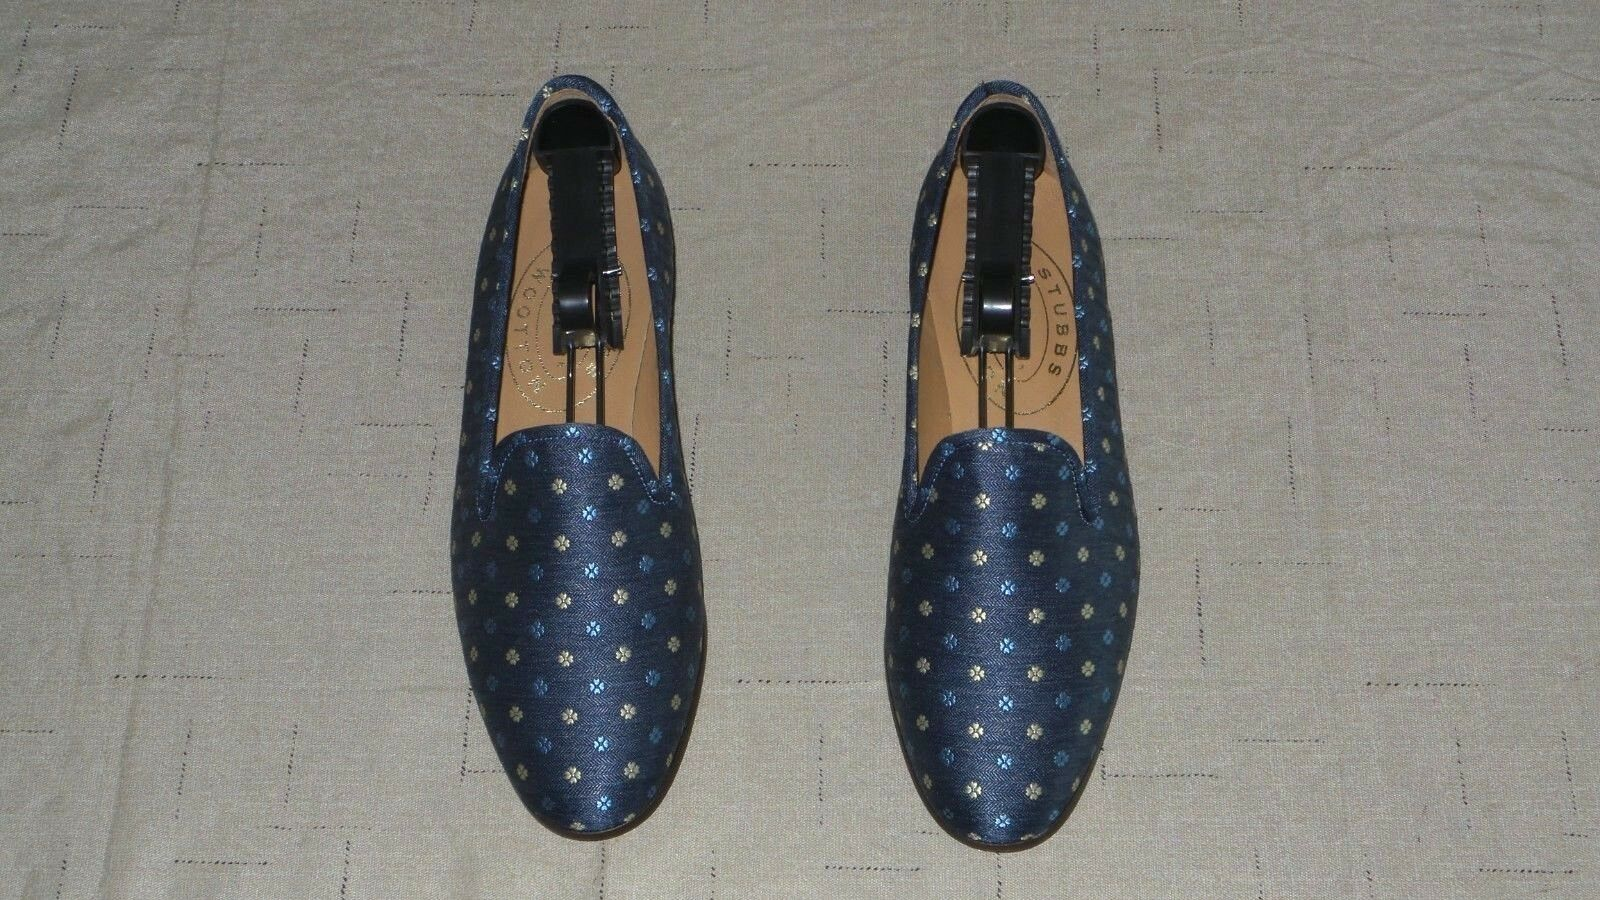 NEW  Women's  450 Stubbs and Wootton bluee Fabric  PEDALS  Slippers Loafers shoes